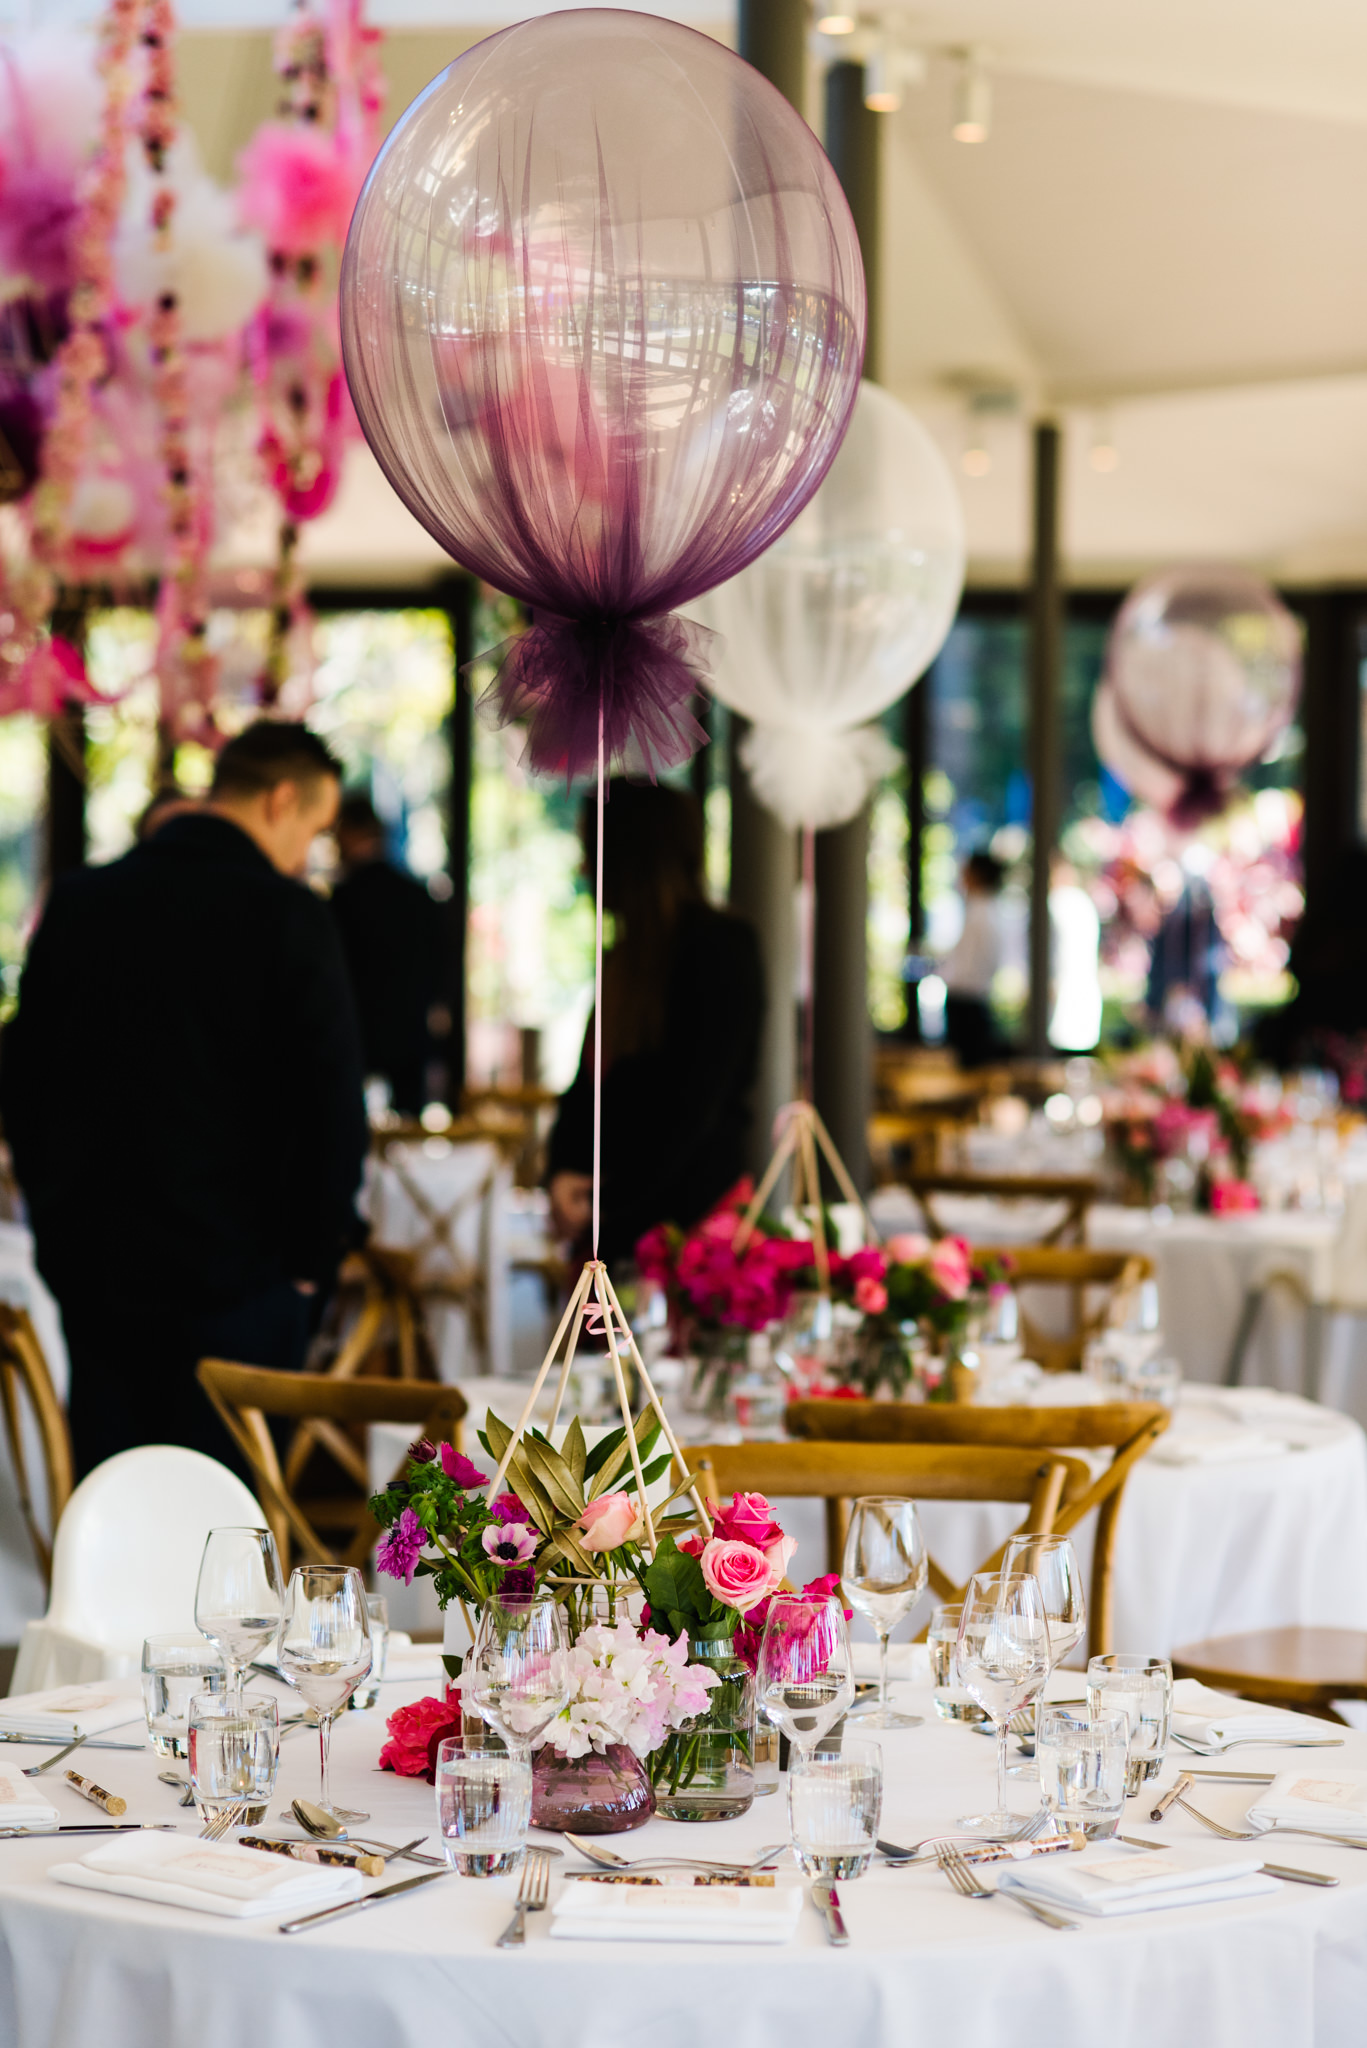 Balloons at table christening reception.jpg